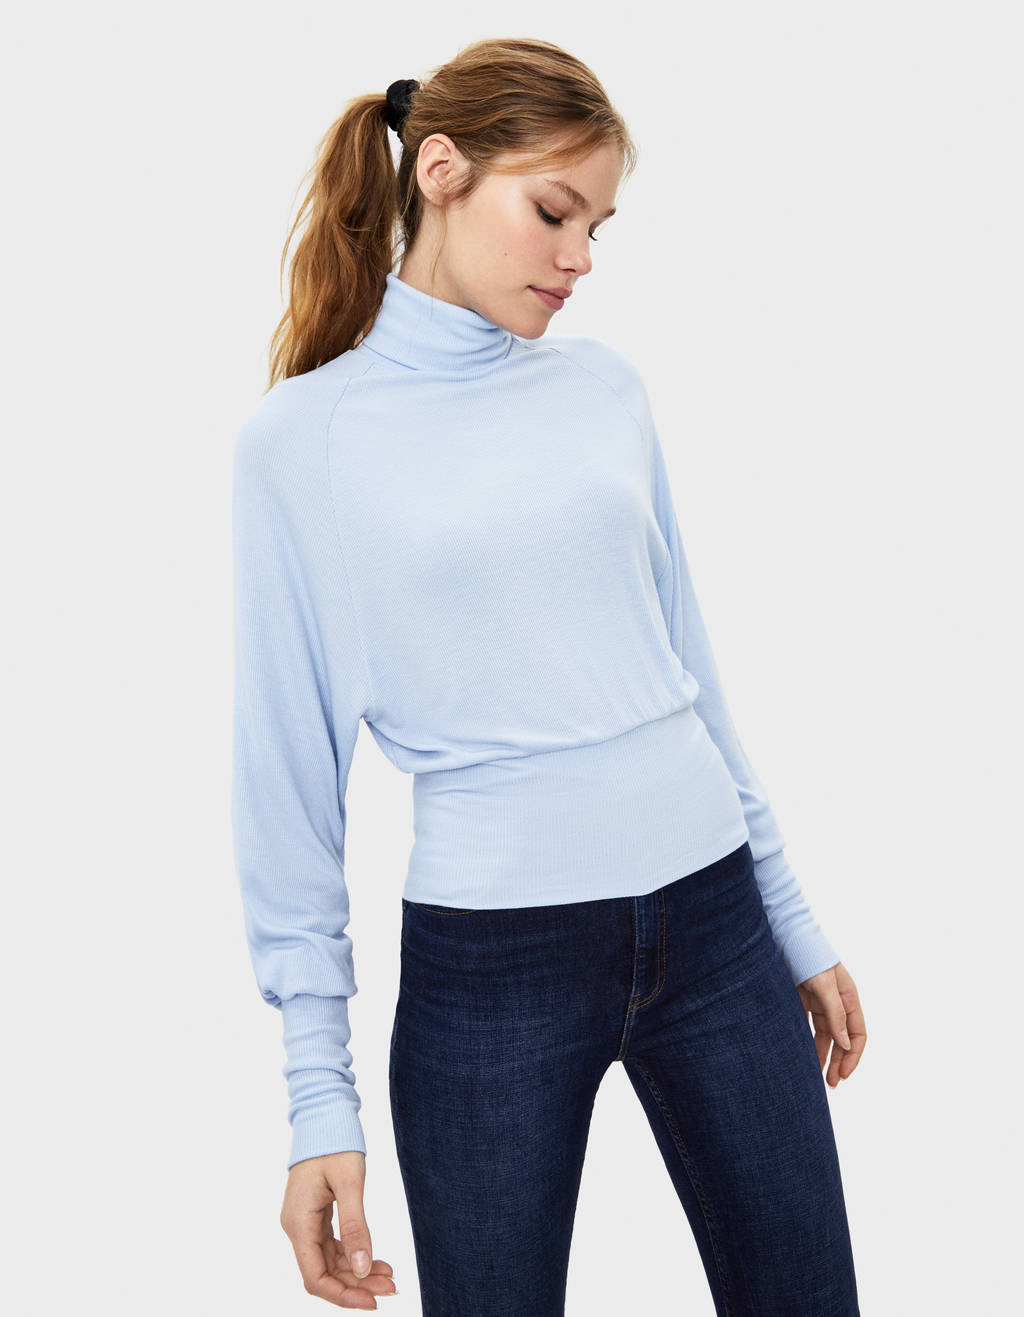 High neck voluminous top